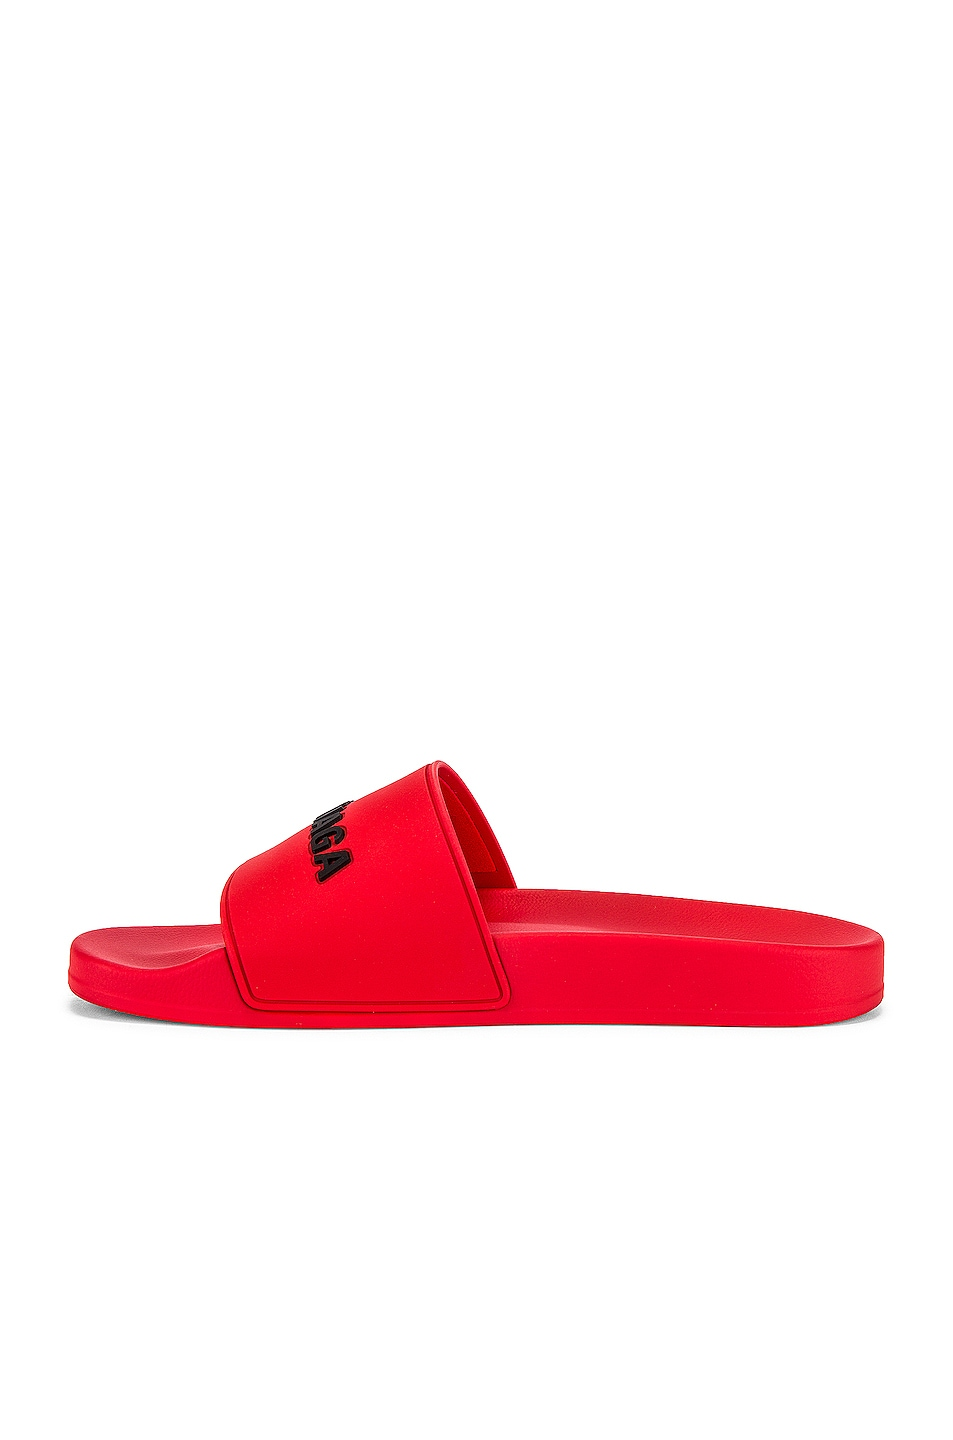 Image 5 of Balenciaga Pool Slide in Red & Black